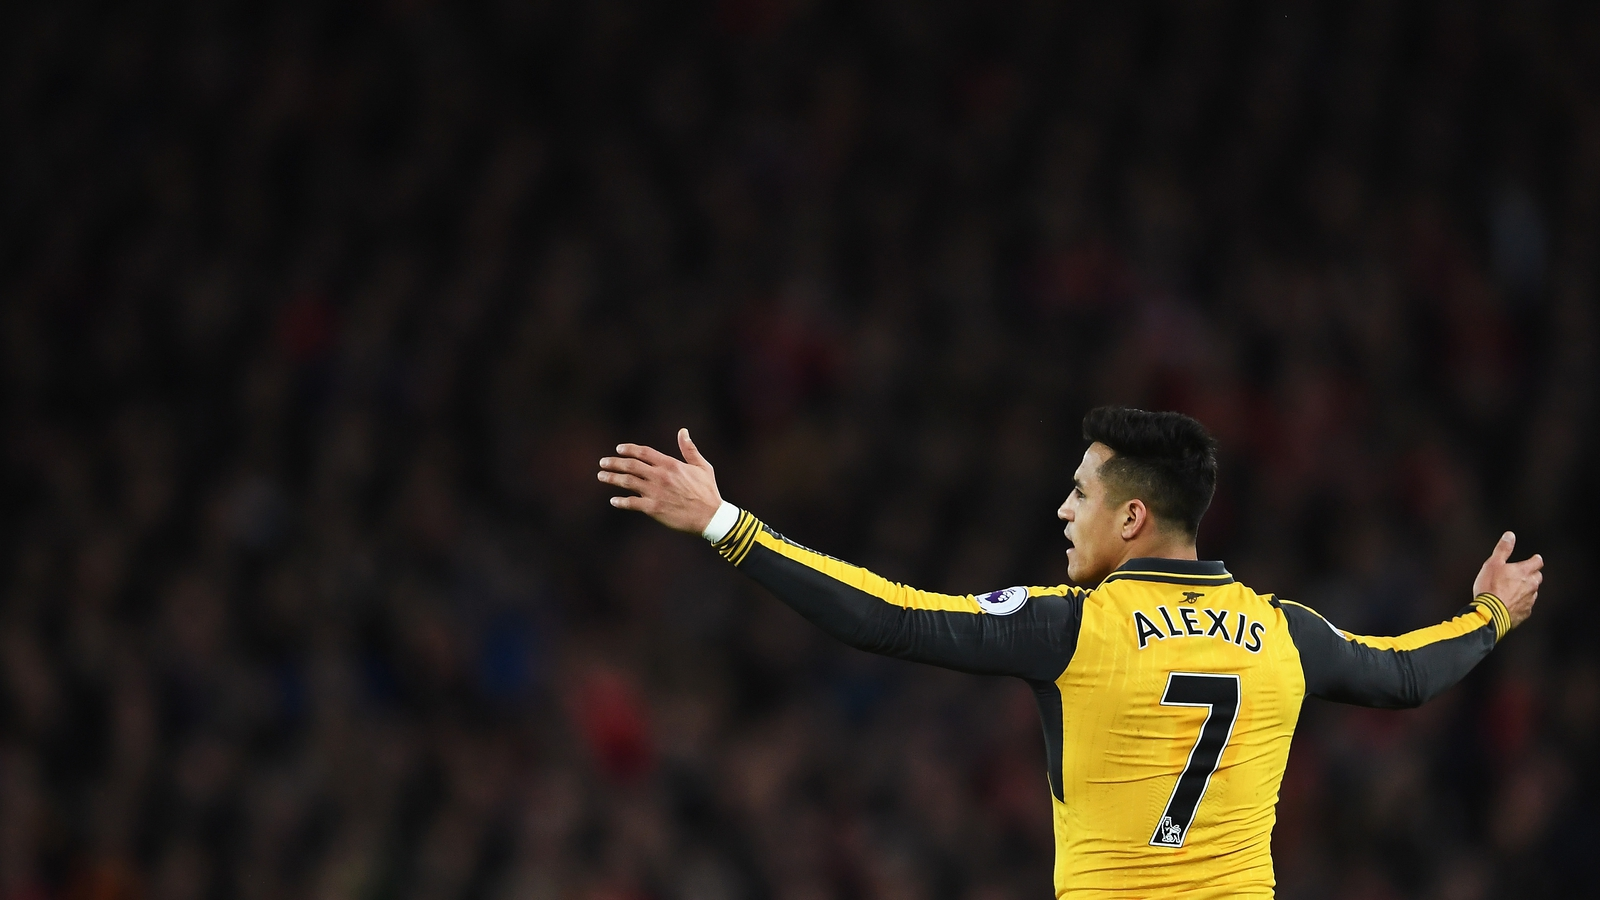 Man United linked with swoop for Alexis SanchezAlexis Sánchez - Arsenal FC - Borussia Dortmund - Chile National Football Team - Kevin De Bruyne - Manchester - Manchester City FC - Manchester United FC - Old Trafford - Sky Italia